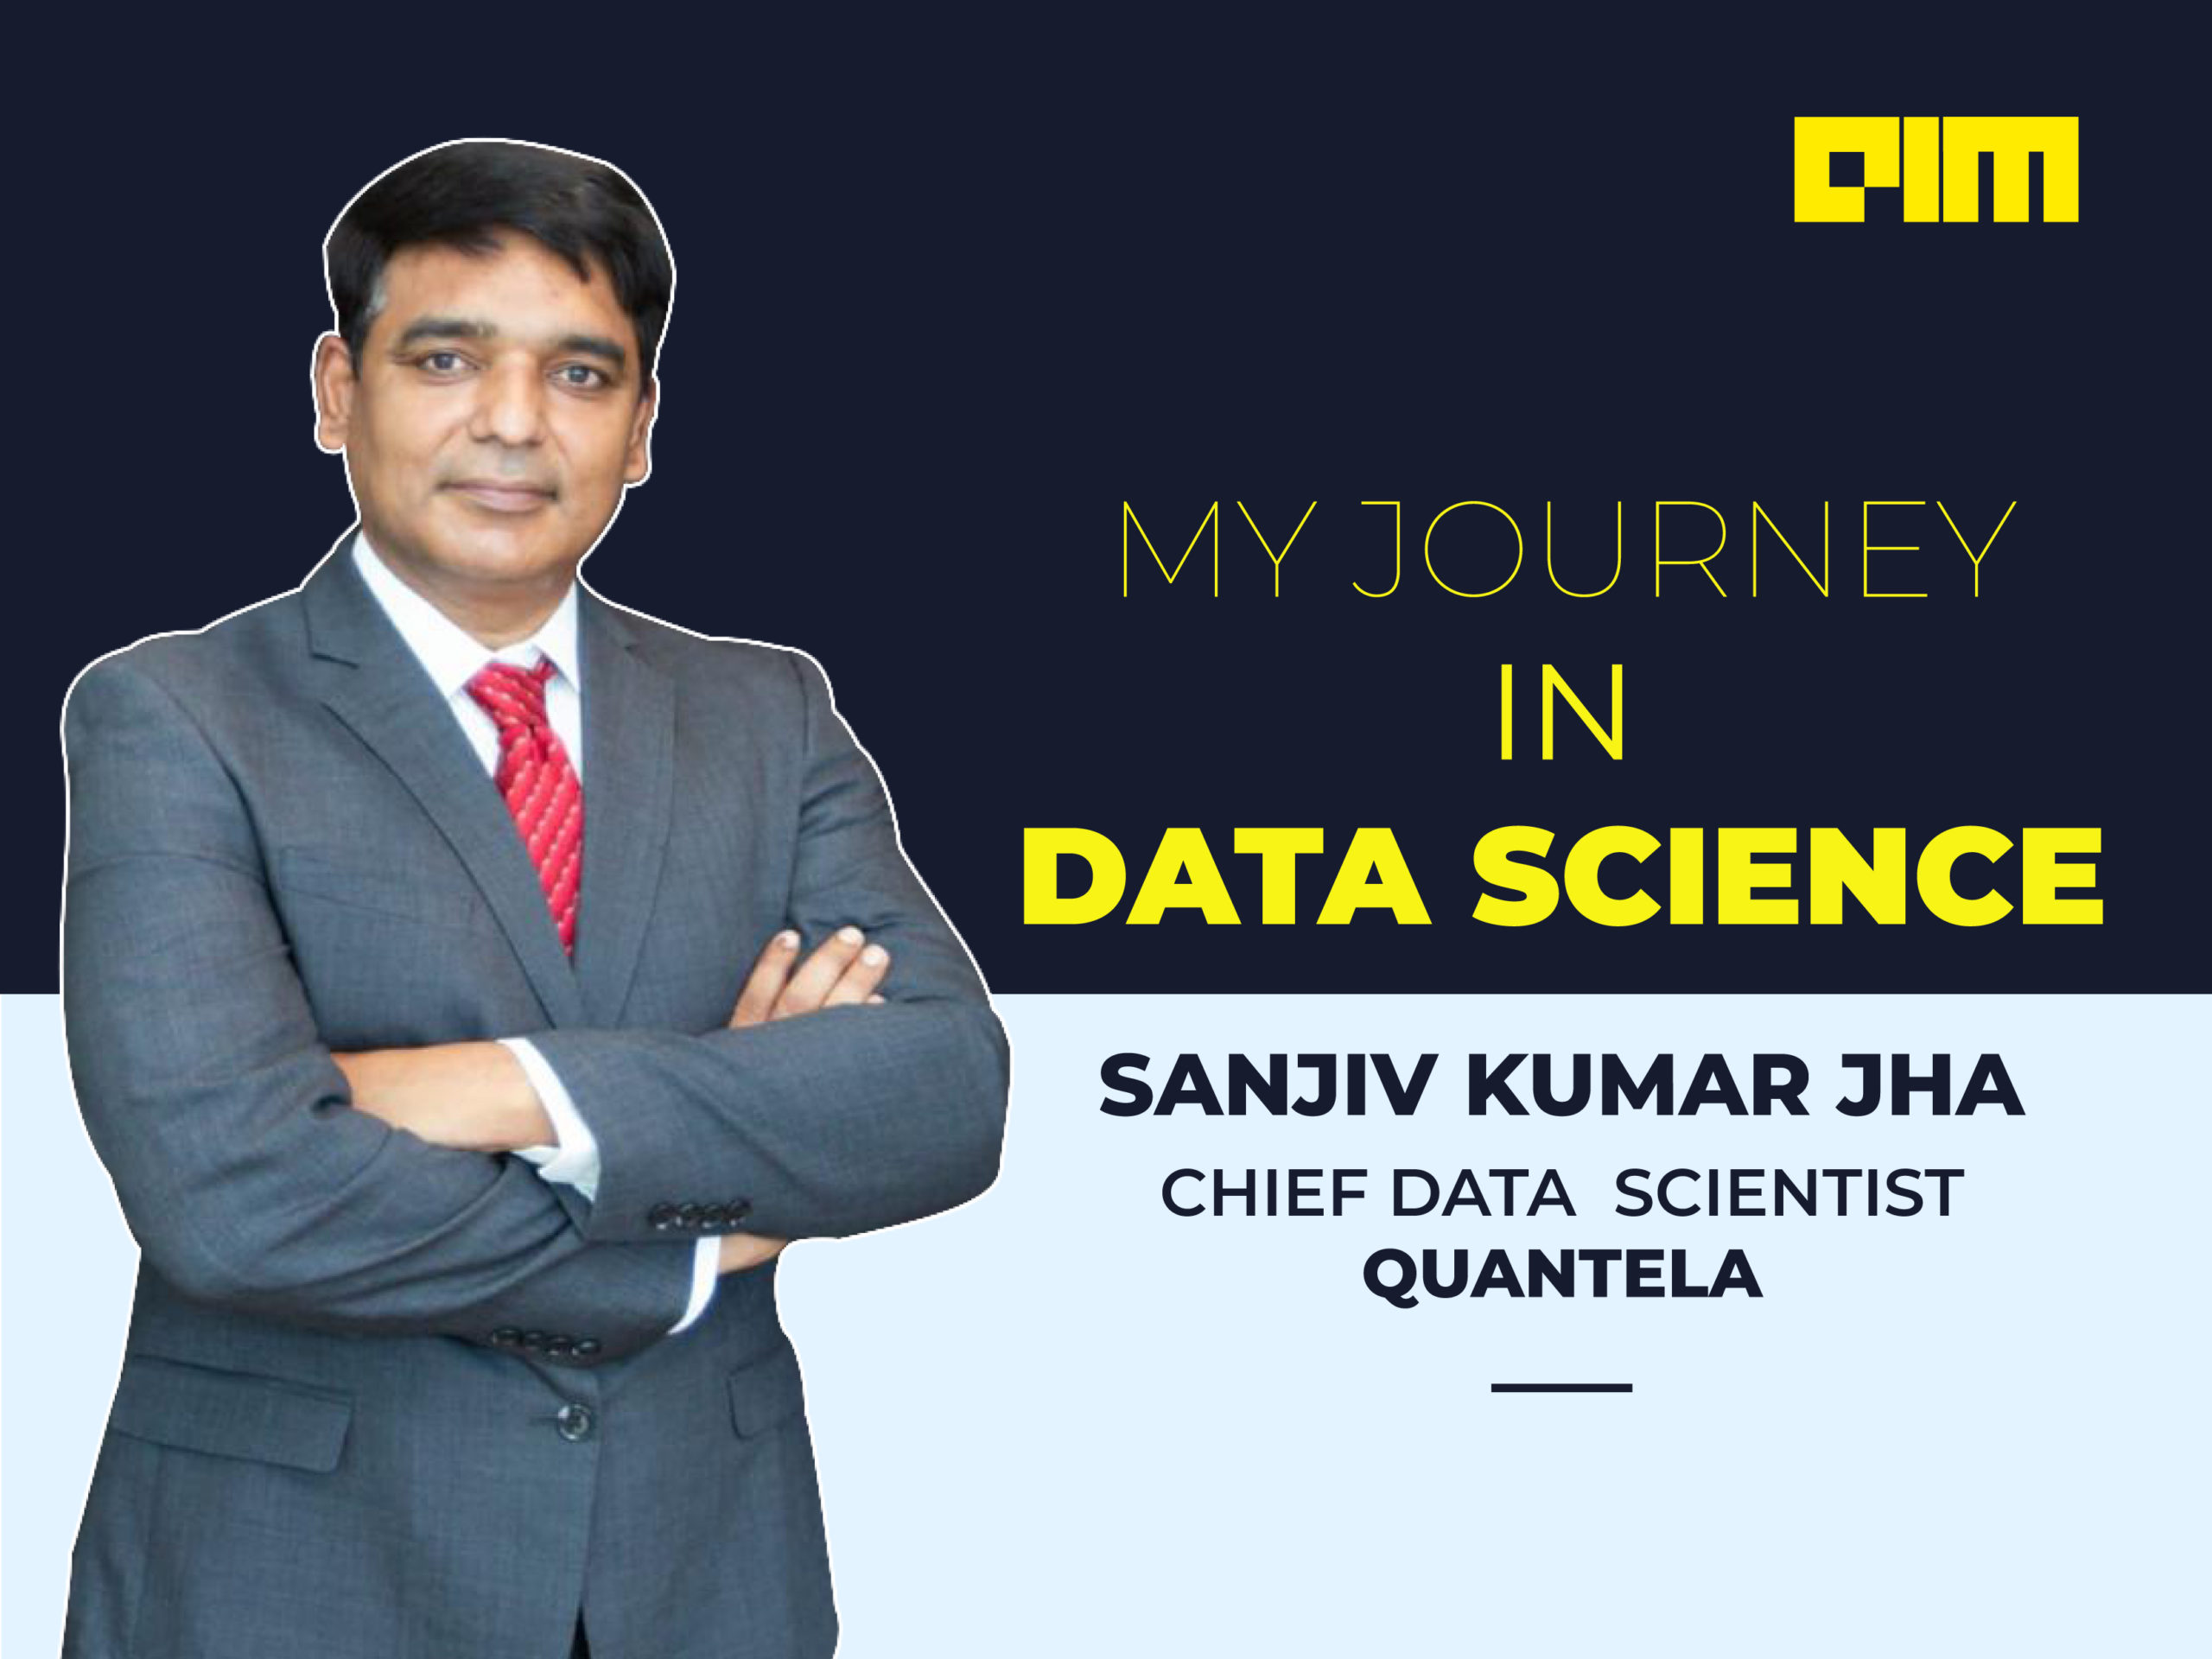 My Journey In Data Science With Sanjiv